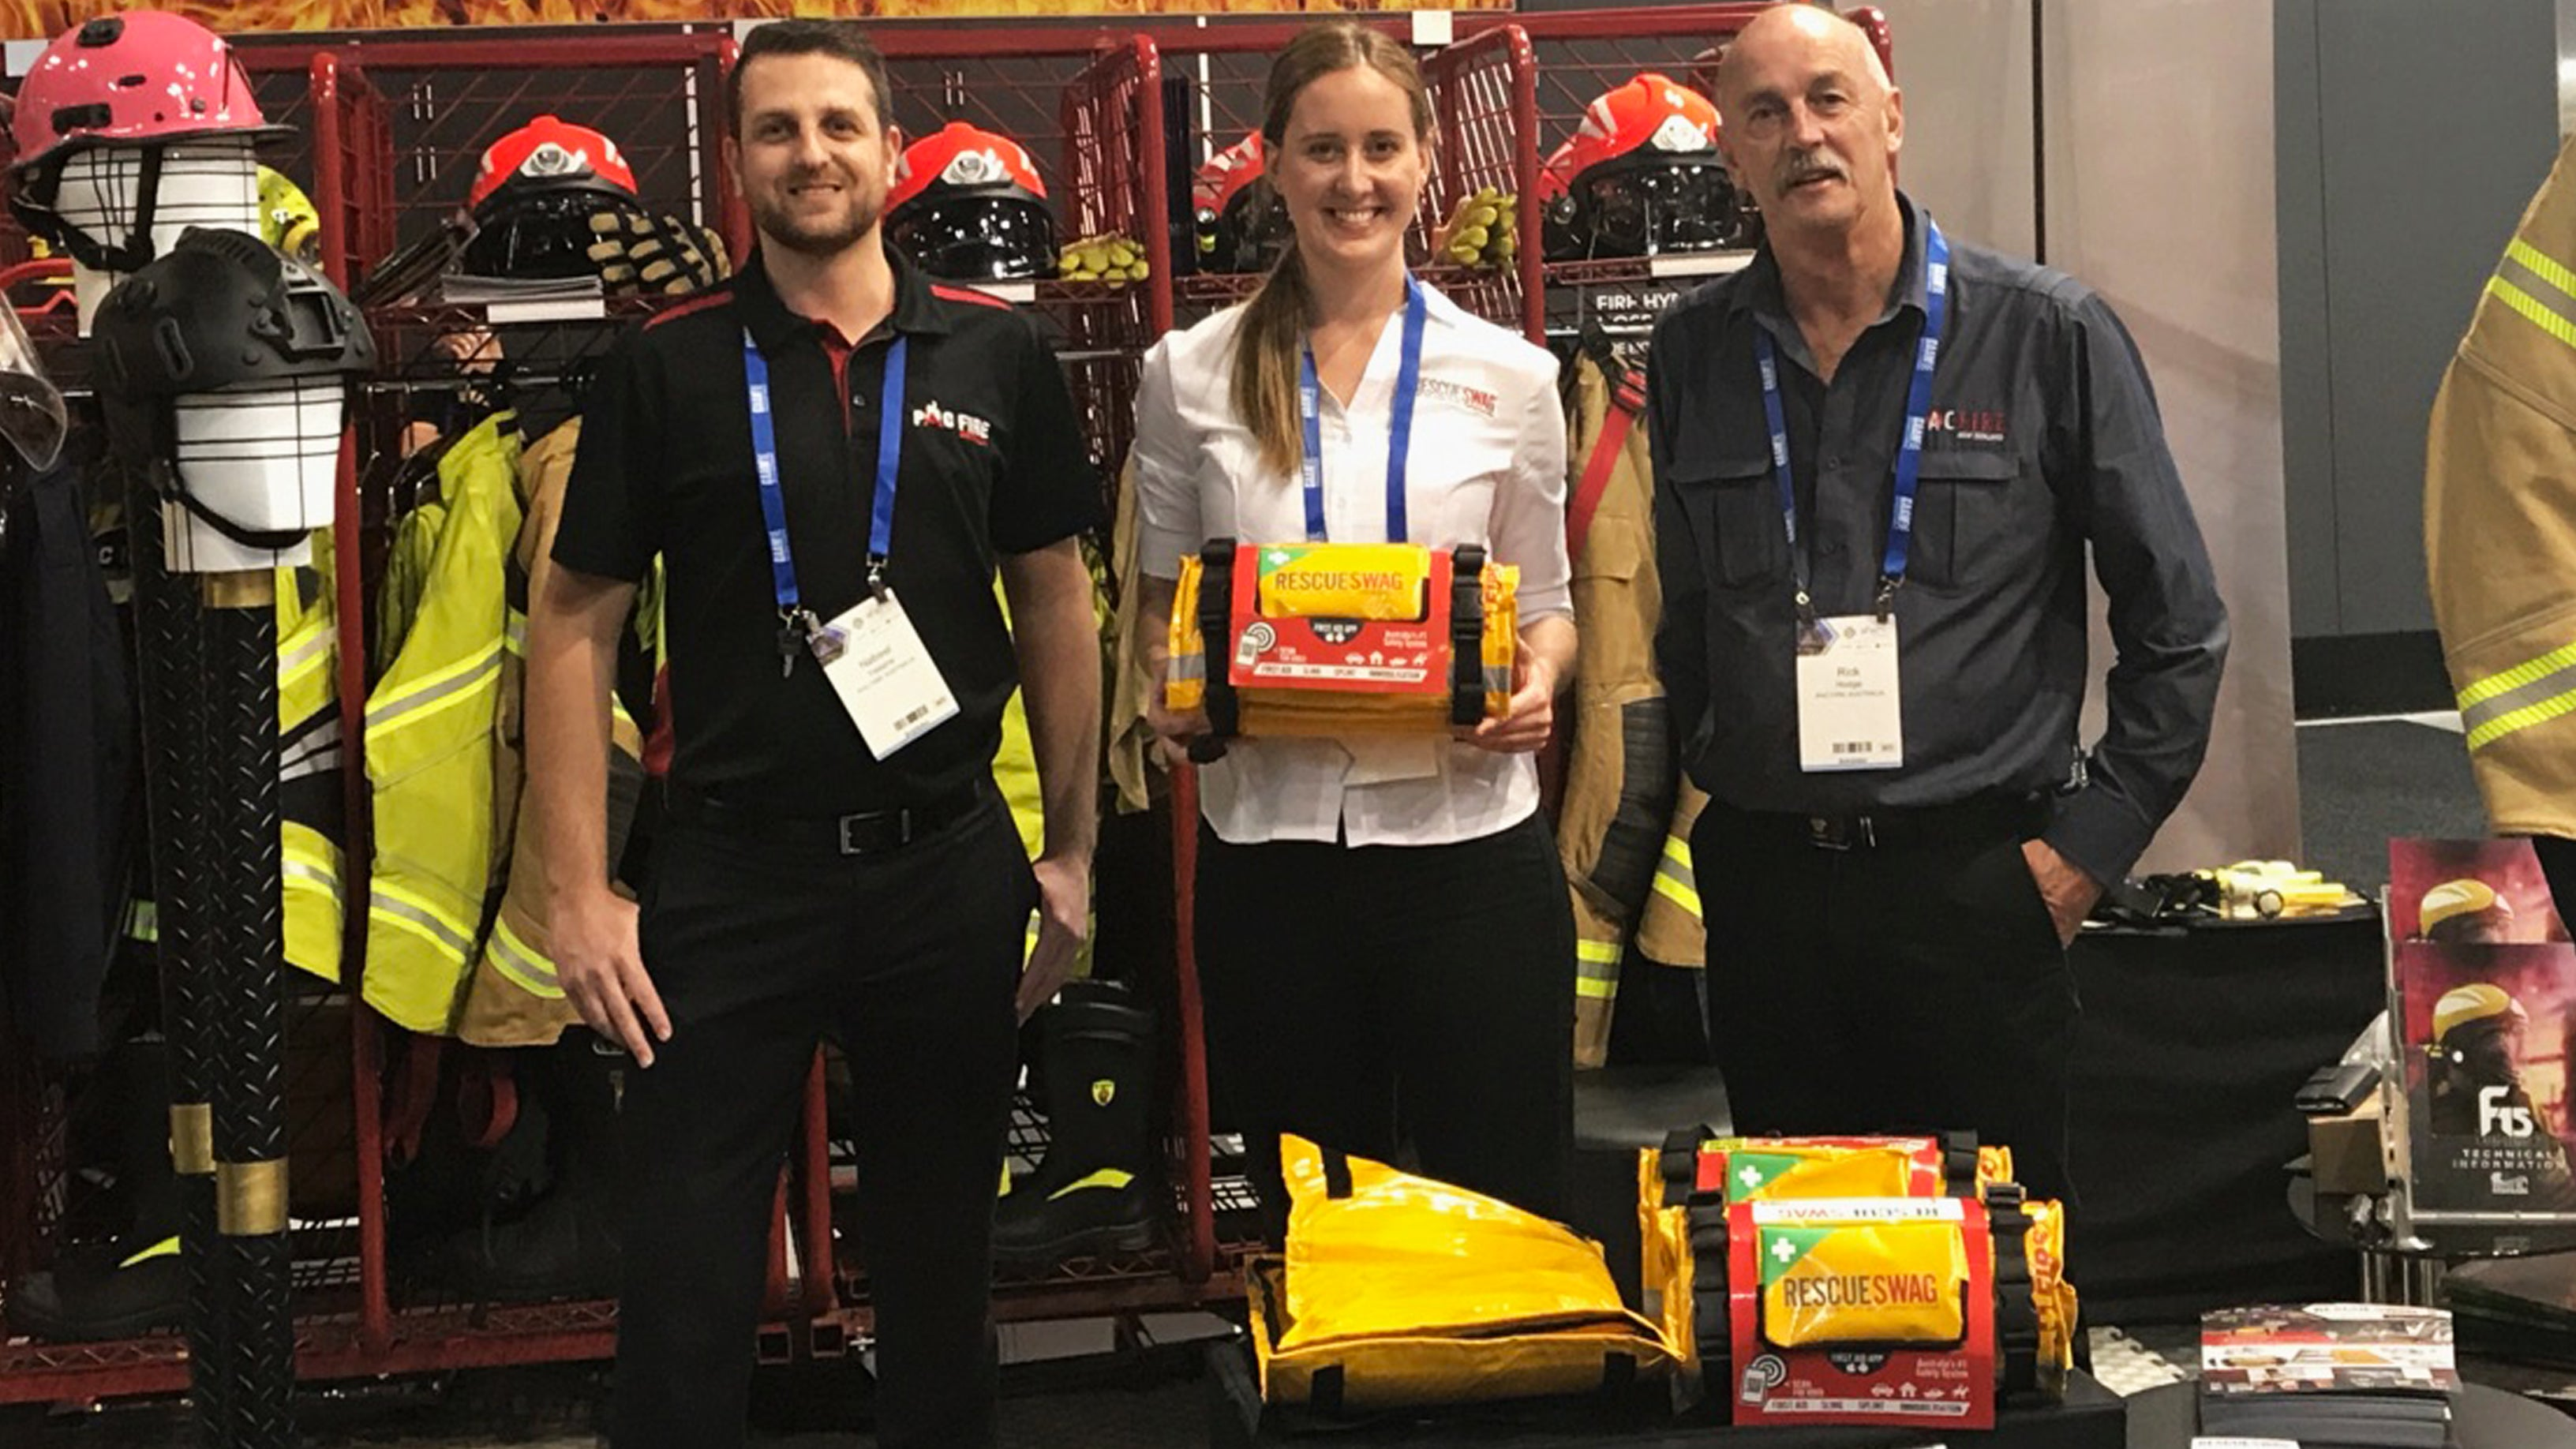 RESCUE SWAG AT AFAC 2017 CONFERENCE